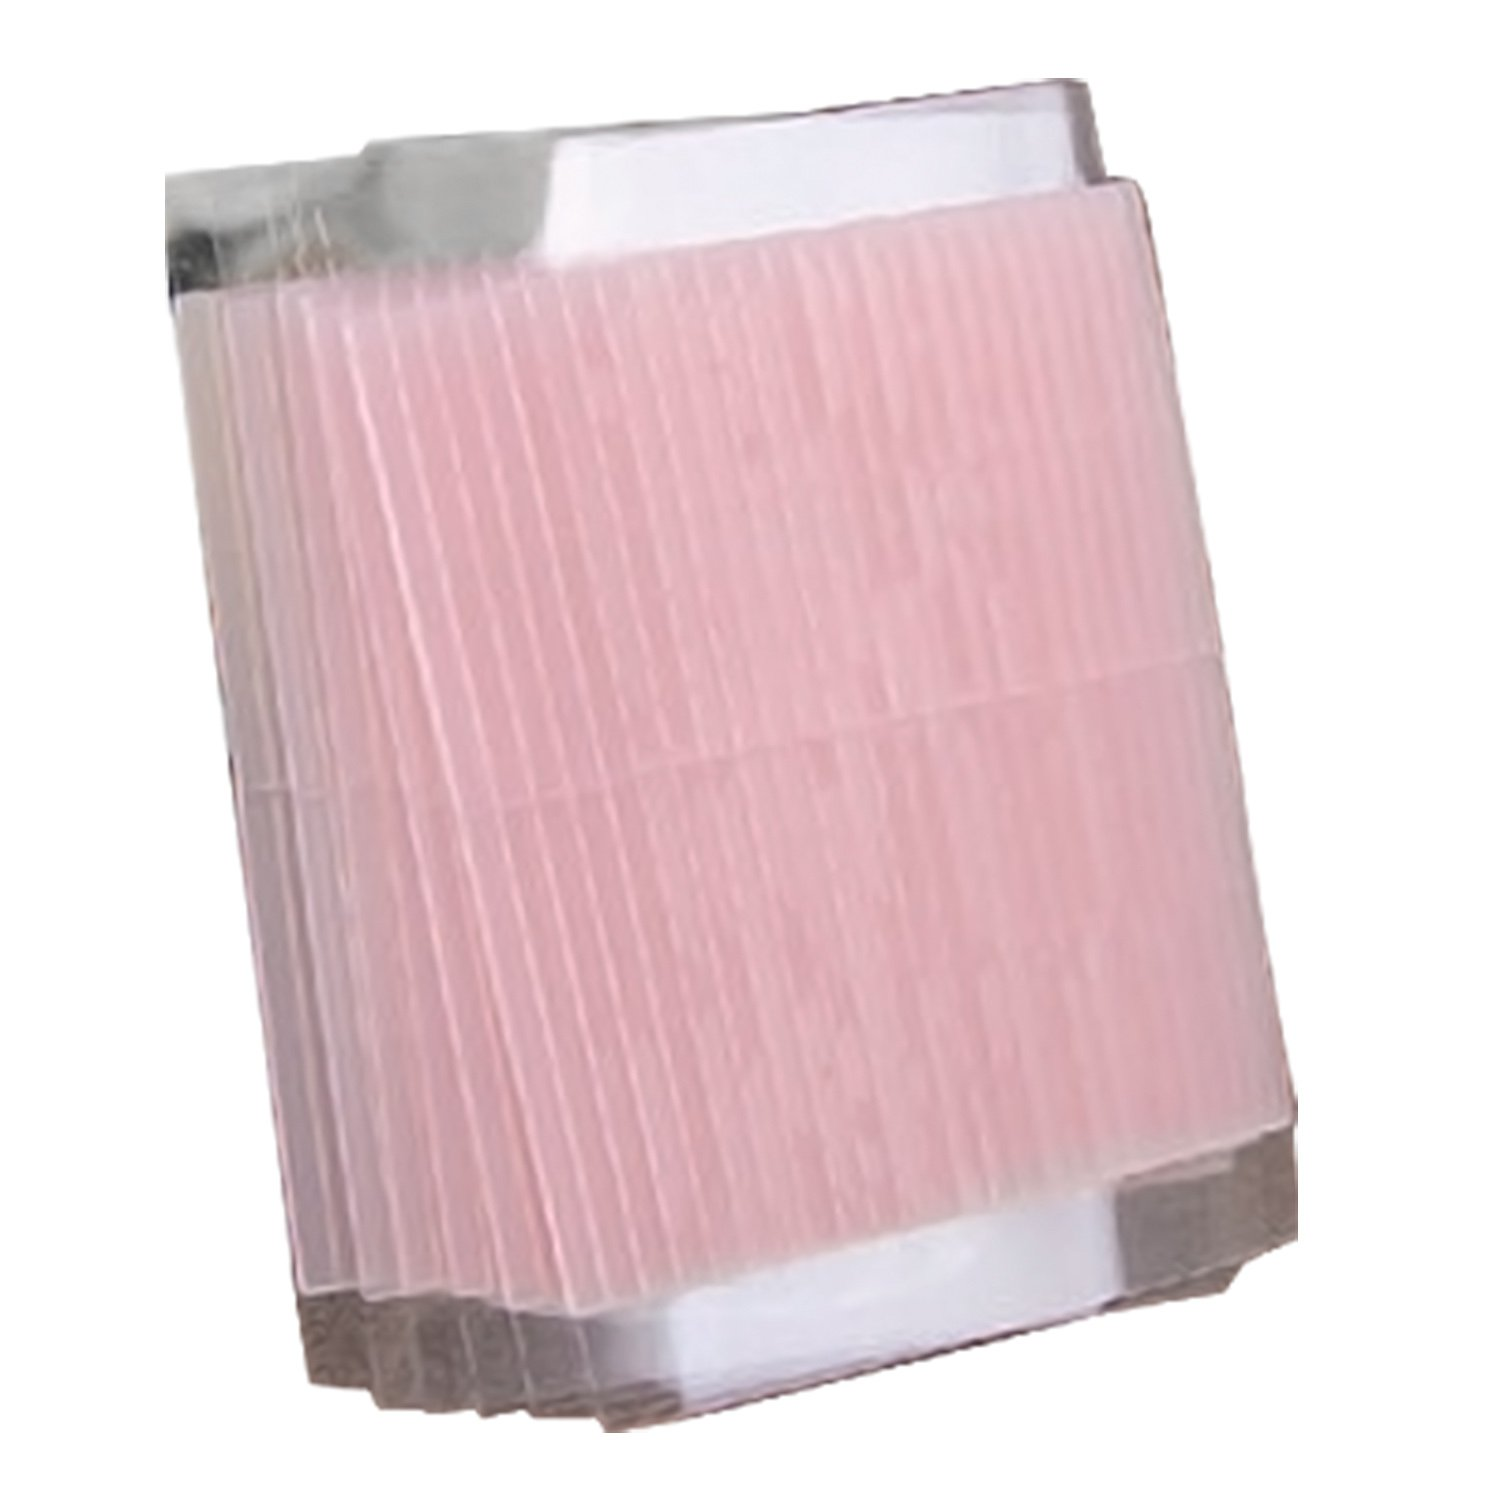 5 Sheets Invisible Breathable Stretch Fiber Narrow Double Eyelid Stickers Tape Vococal